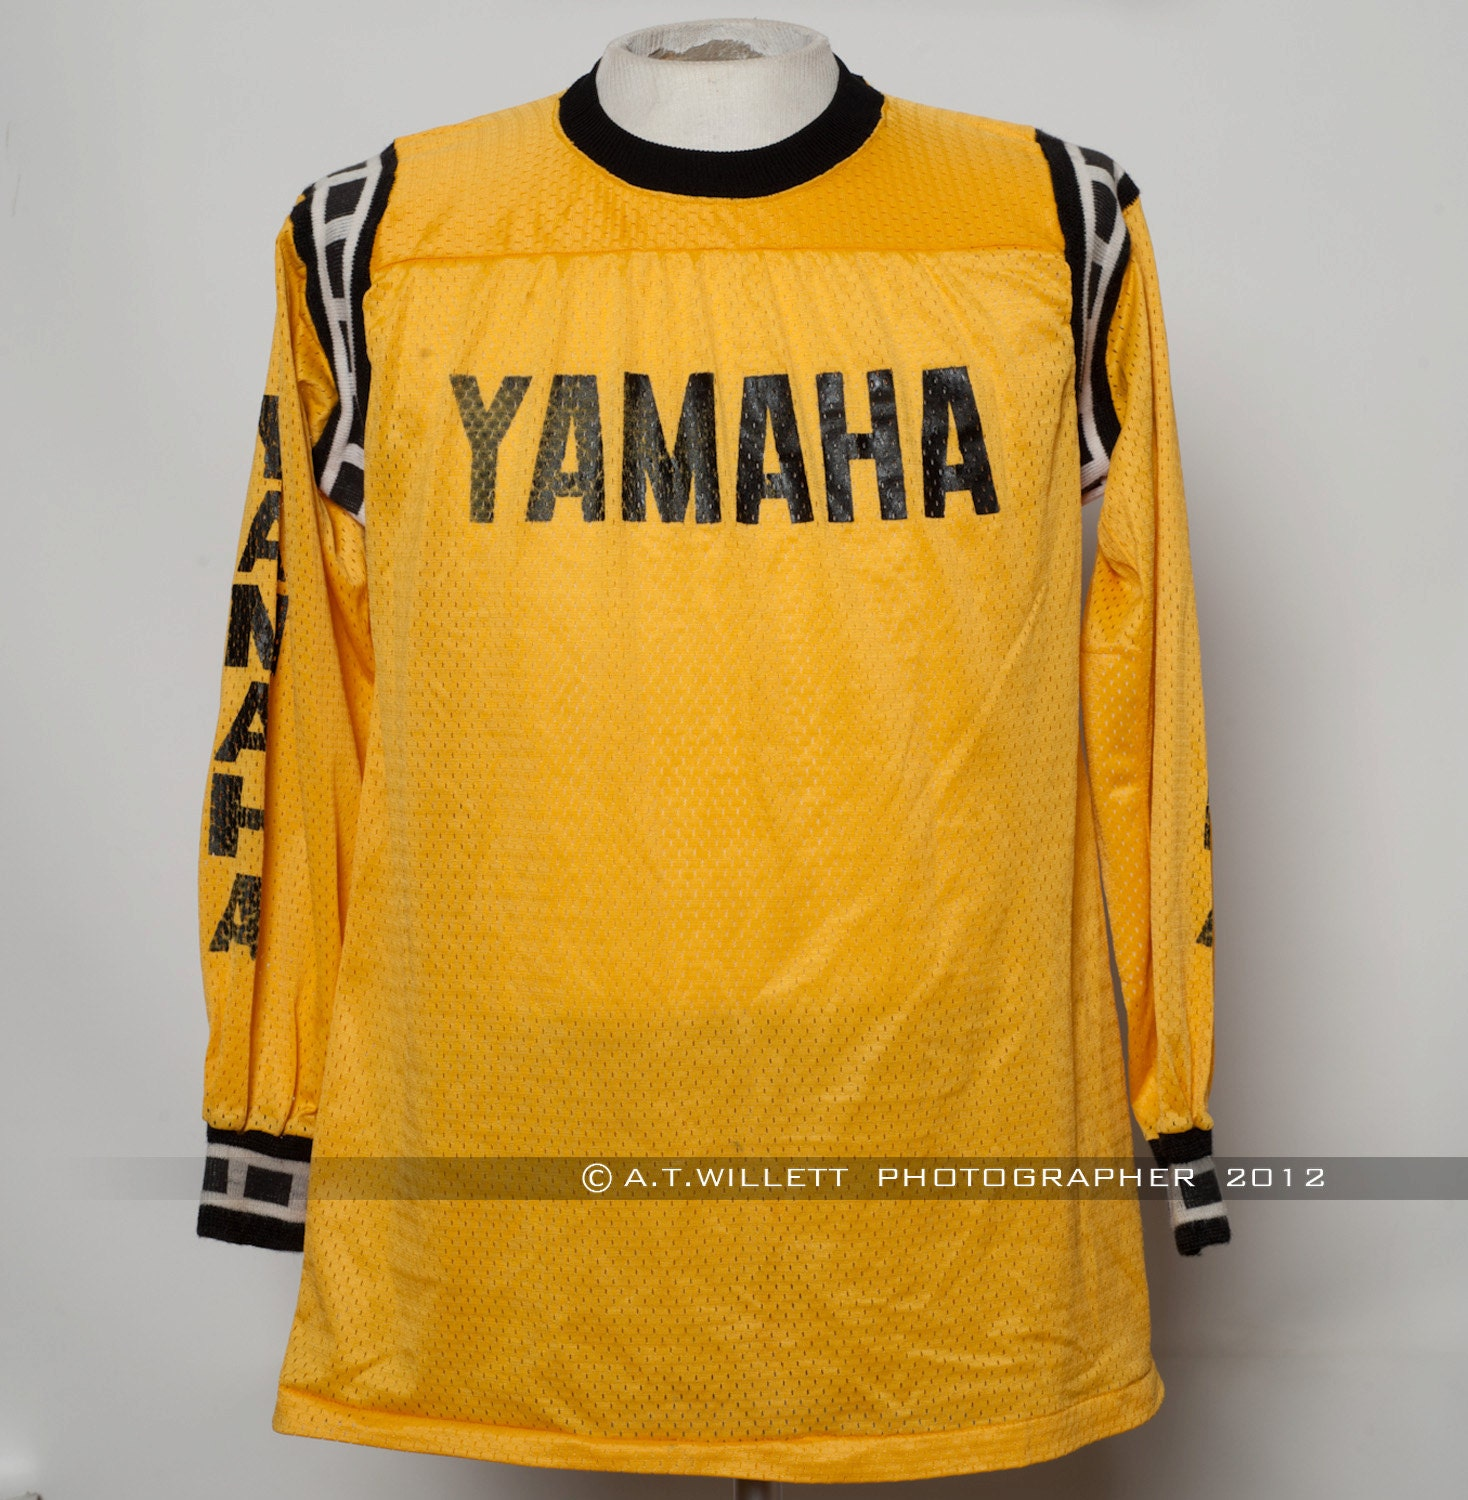 Small Torque Wrench >> 1970's Vintage Yamaha Motocross Jersey Motorcycle by ...